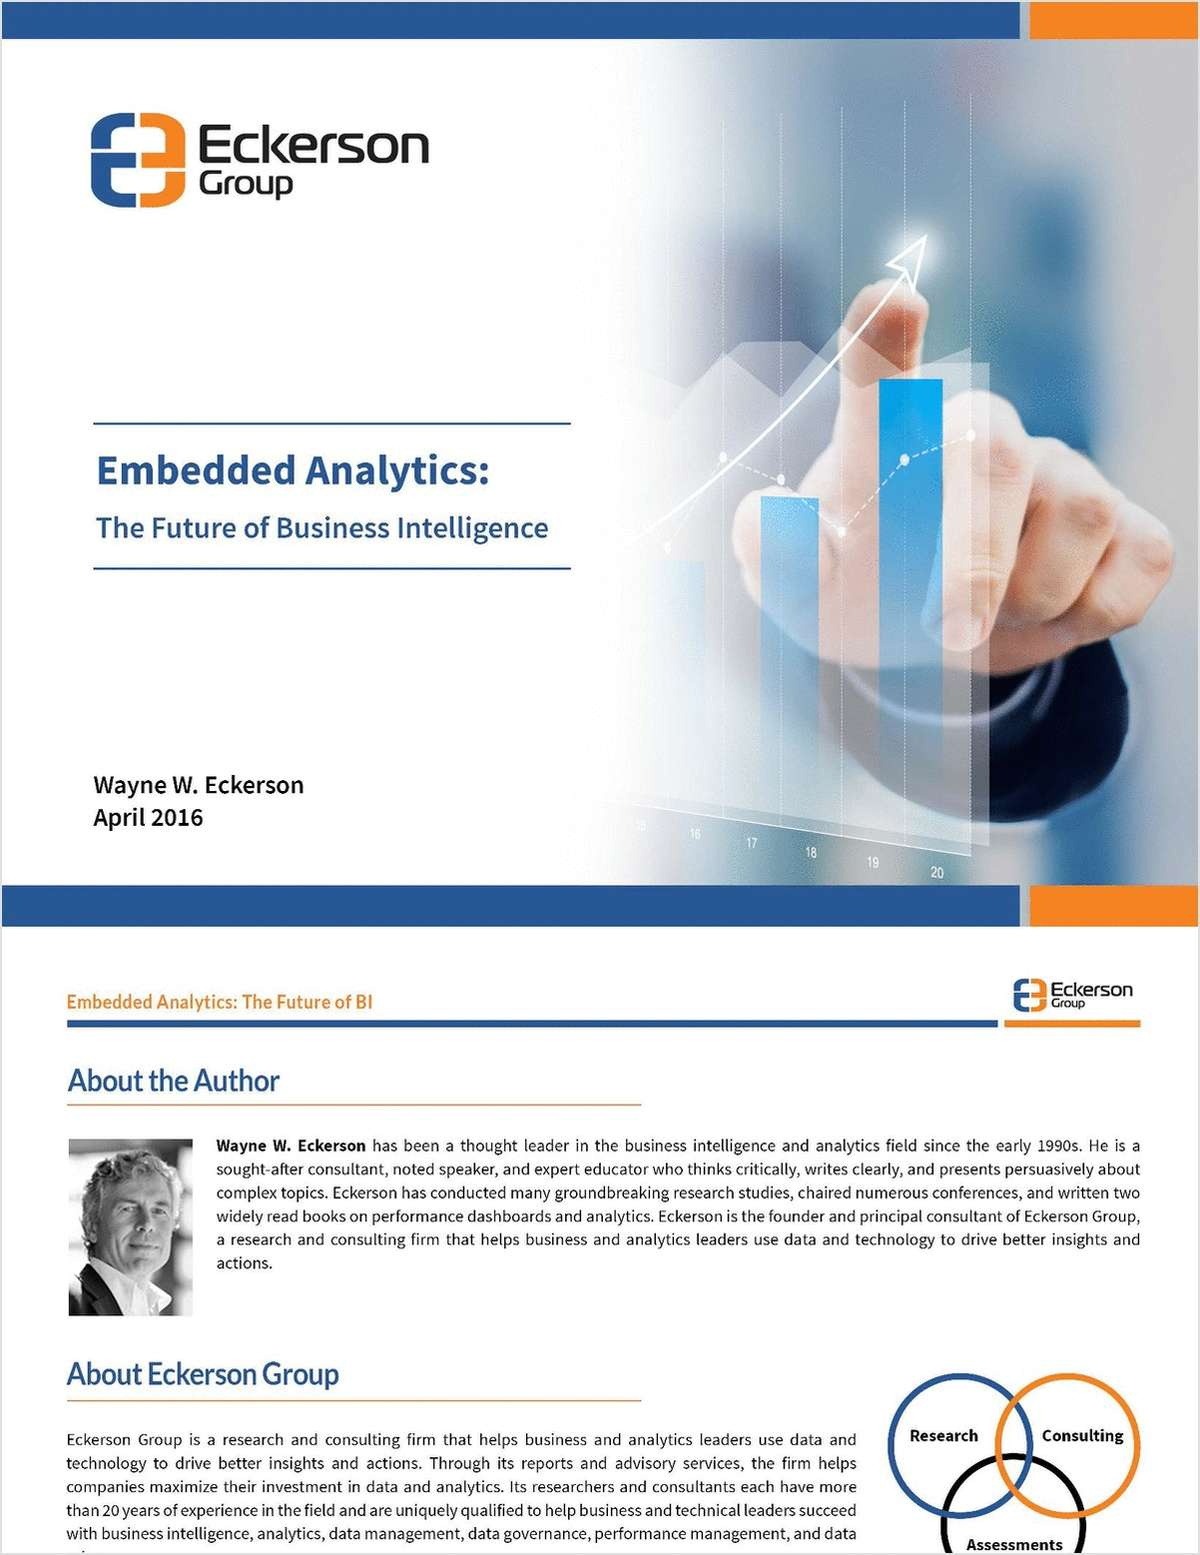 Eckerson Group Embedded Analytics: The Future of BI